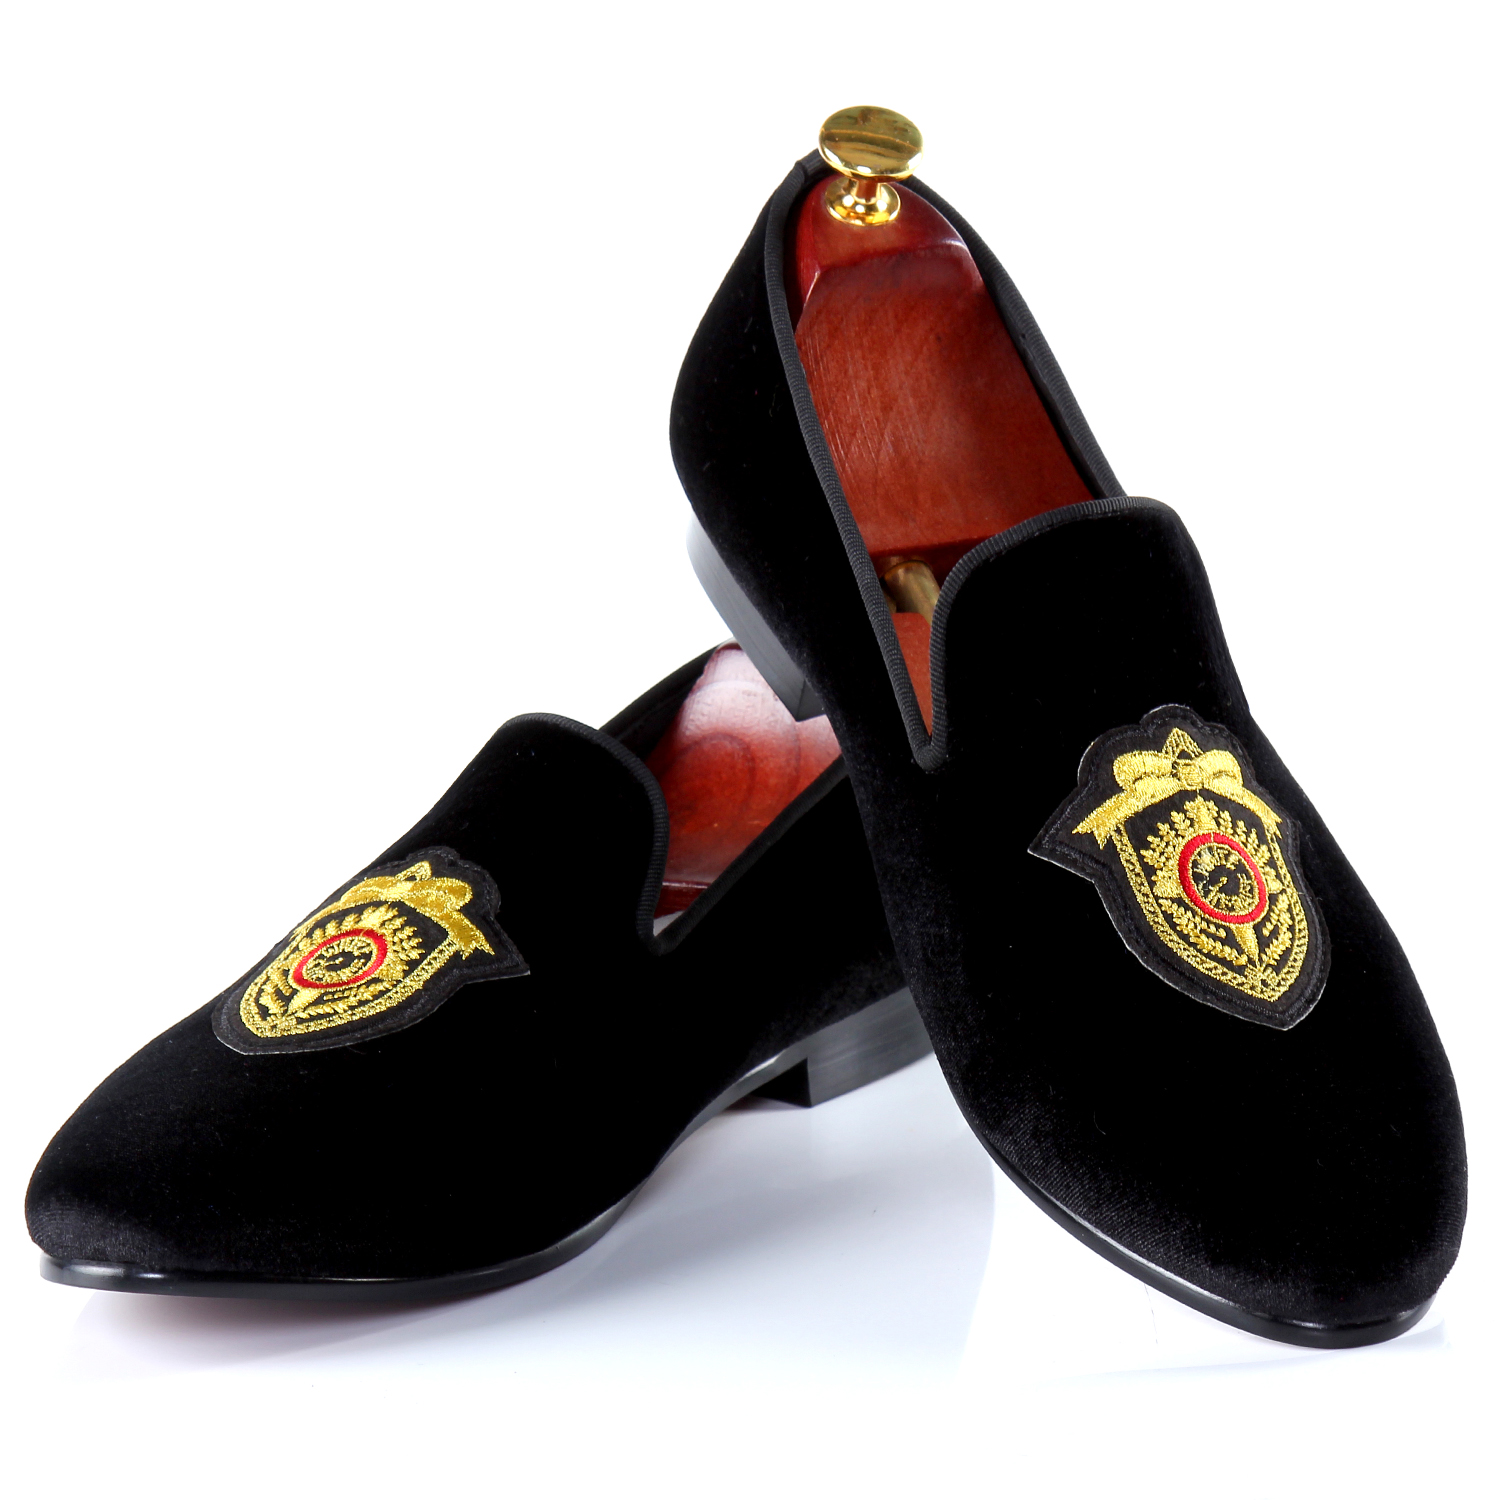 Men Loafer Shoes Badge Motif Black Velvet Slippers Fashion Party Shoes Free Shipping Size 7-14 сувенир подвеска бабочка красавица